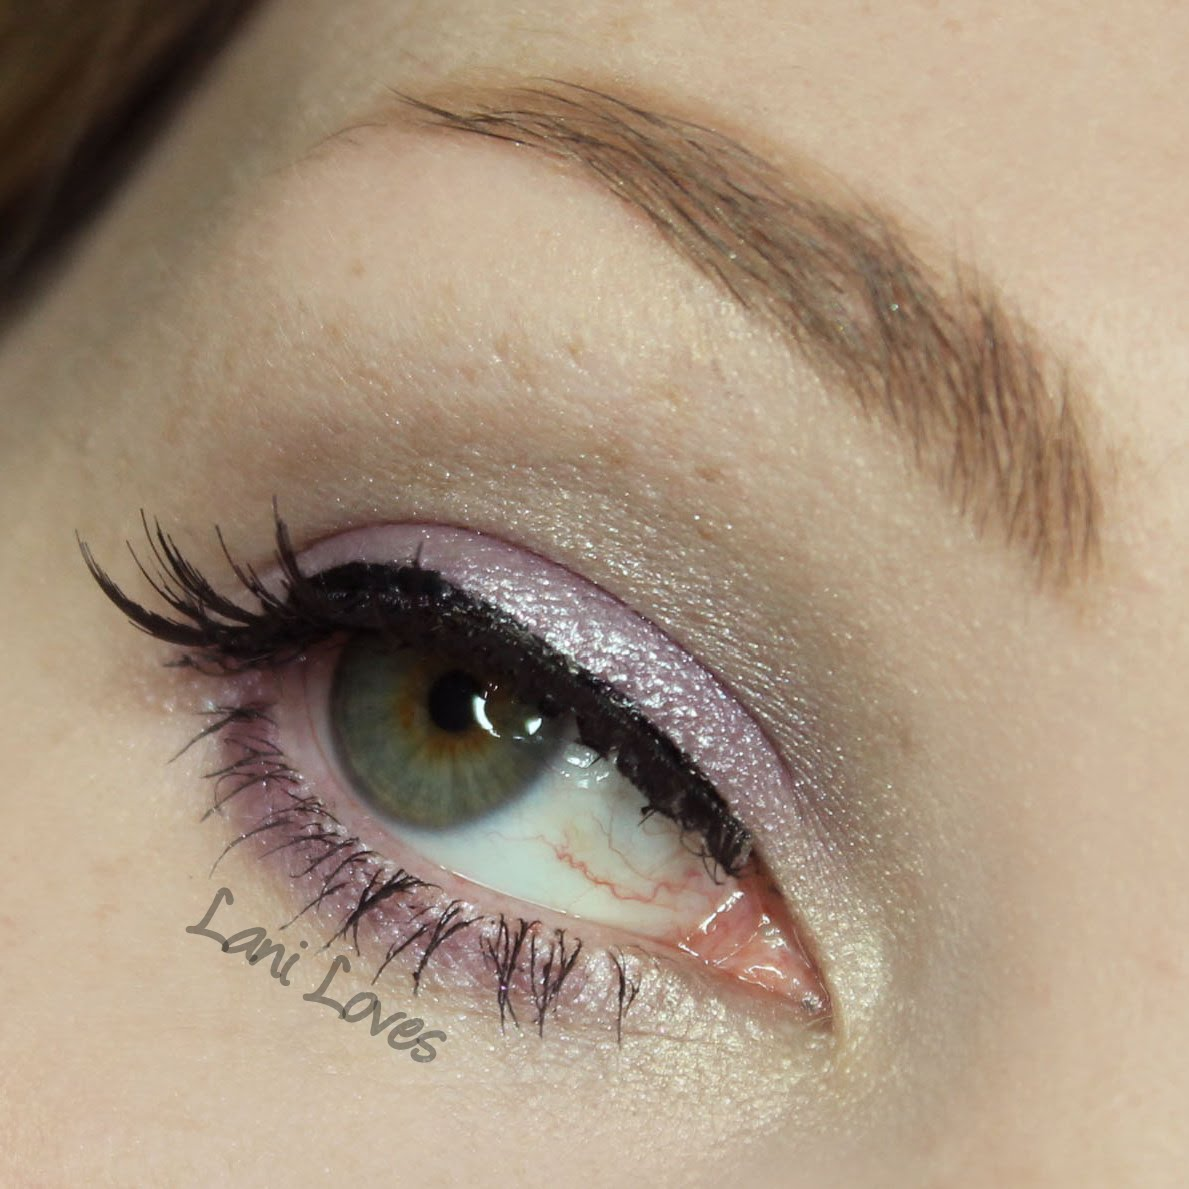 Ardell Edgy #402 False Eyelashes Photos & Review